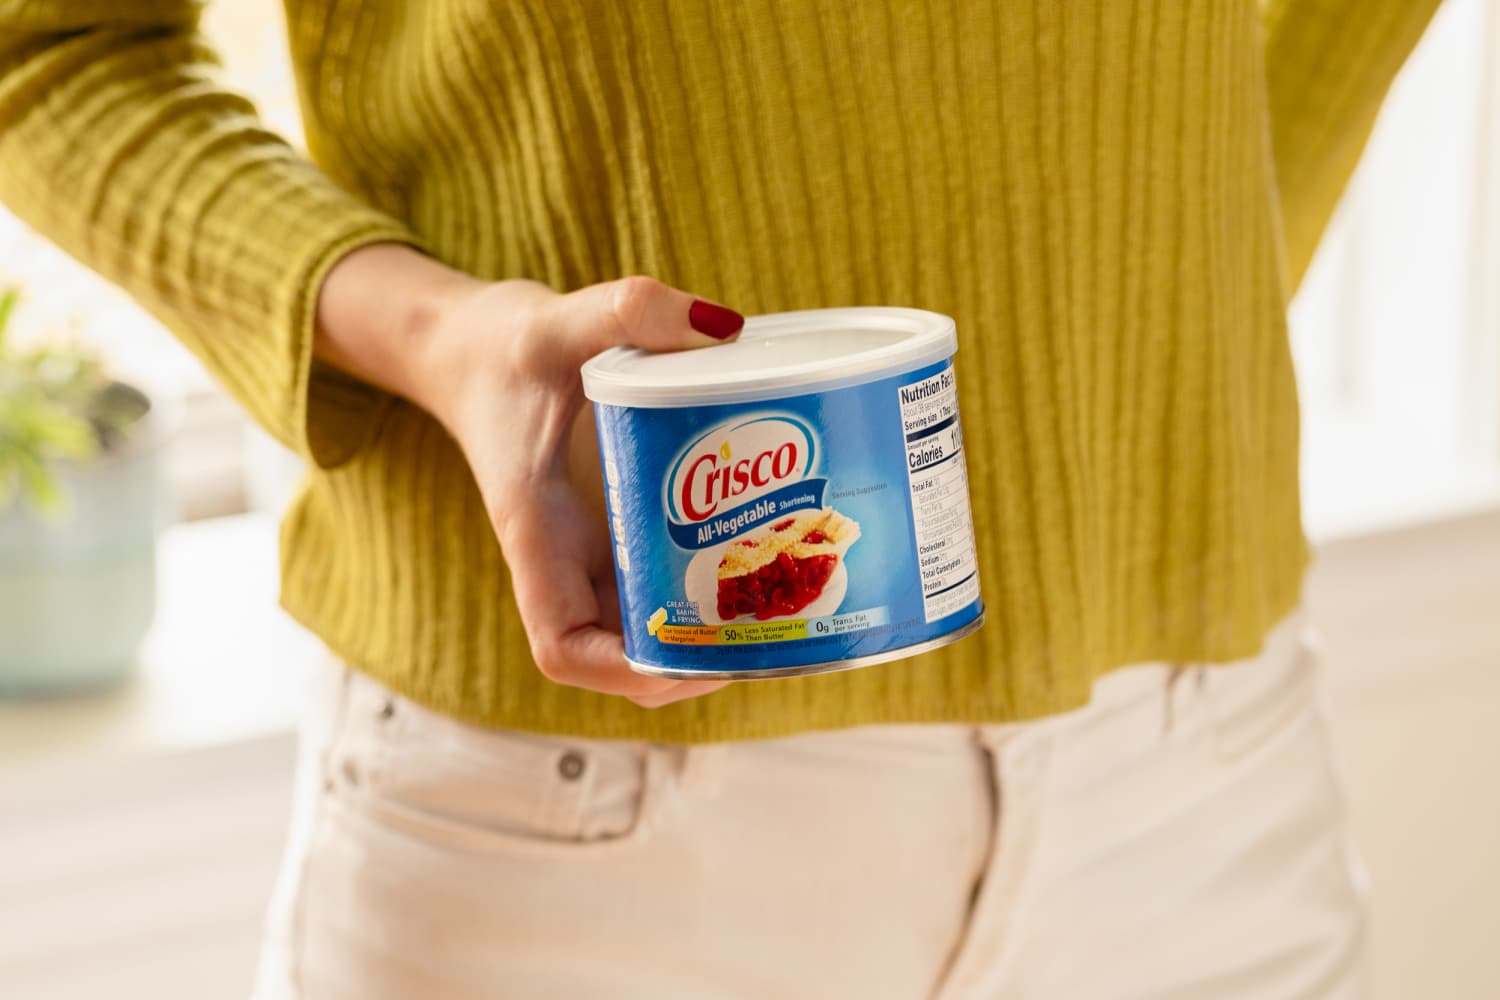 The First Thing You Should Do with a New Tub of Crisco